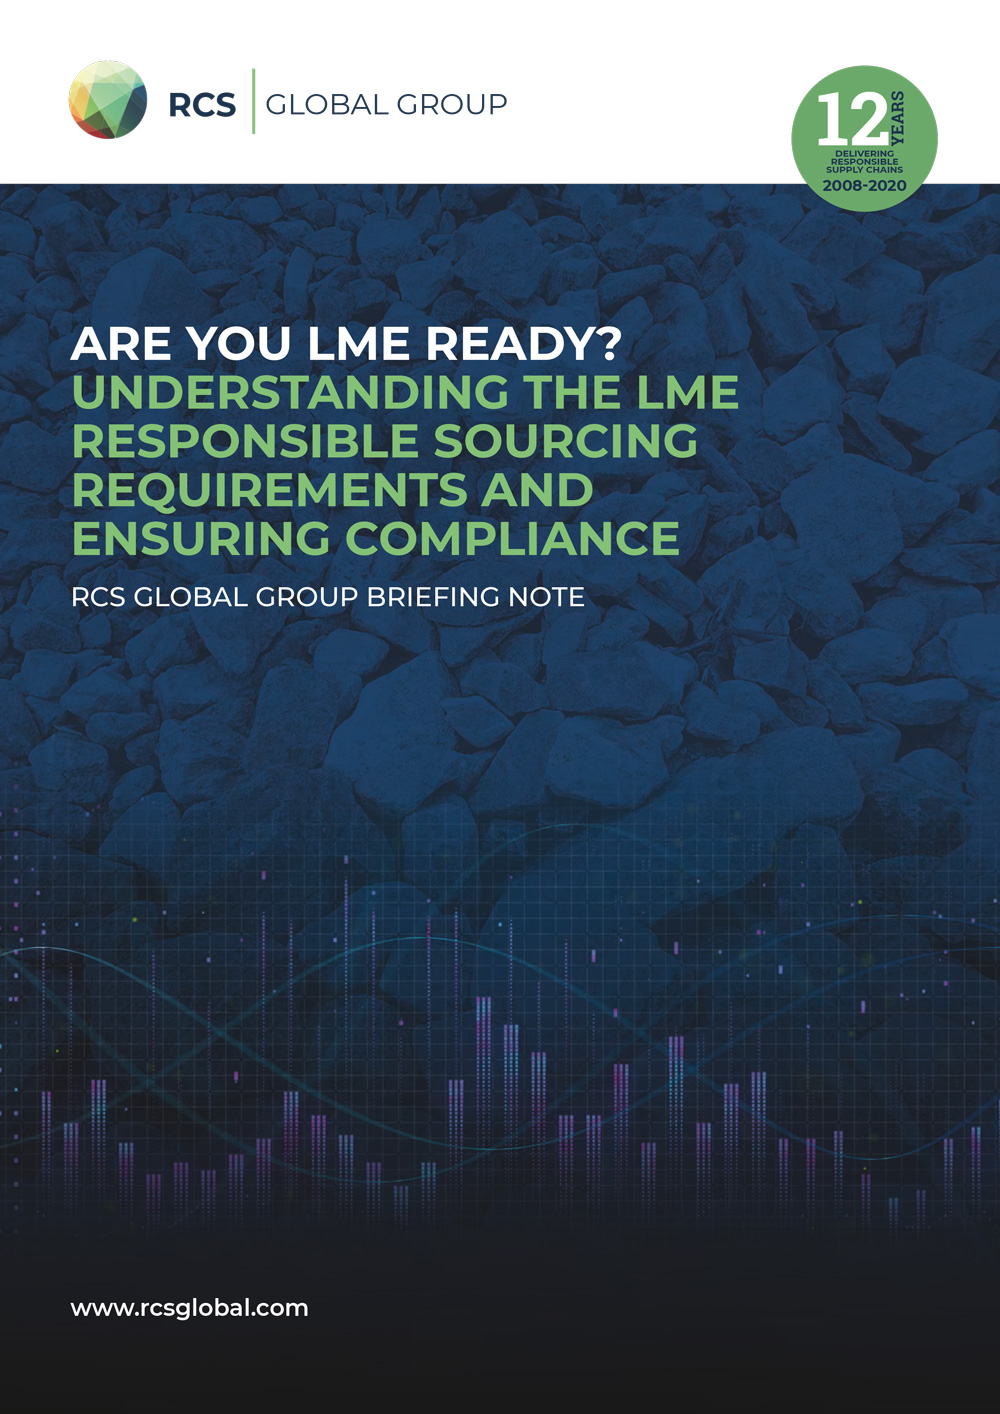 Are you LME ready?